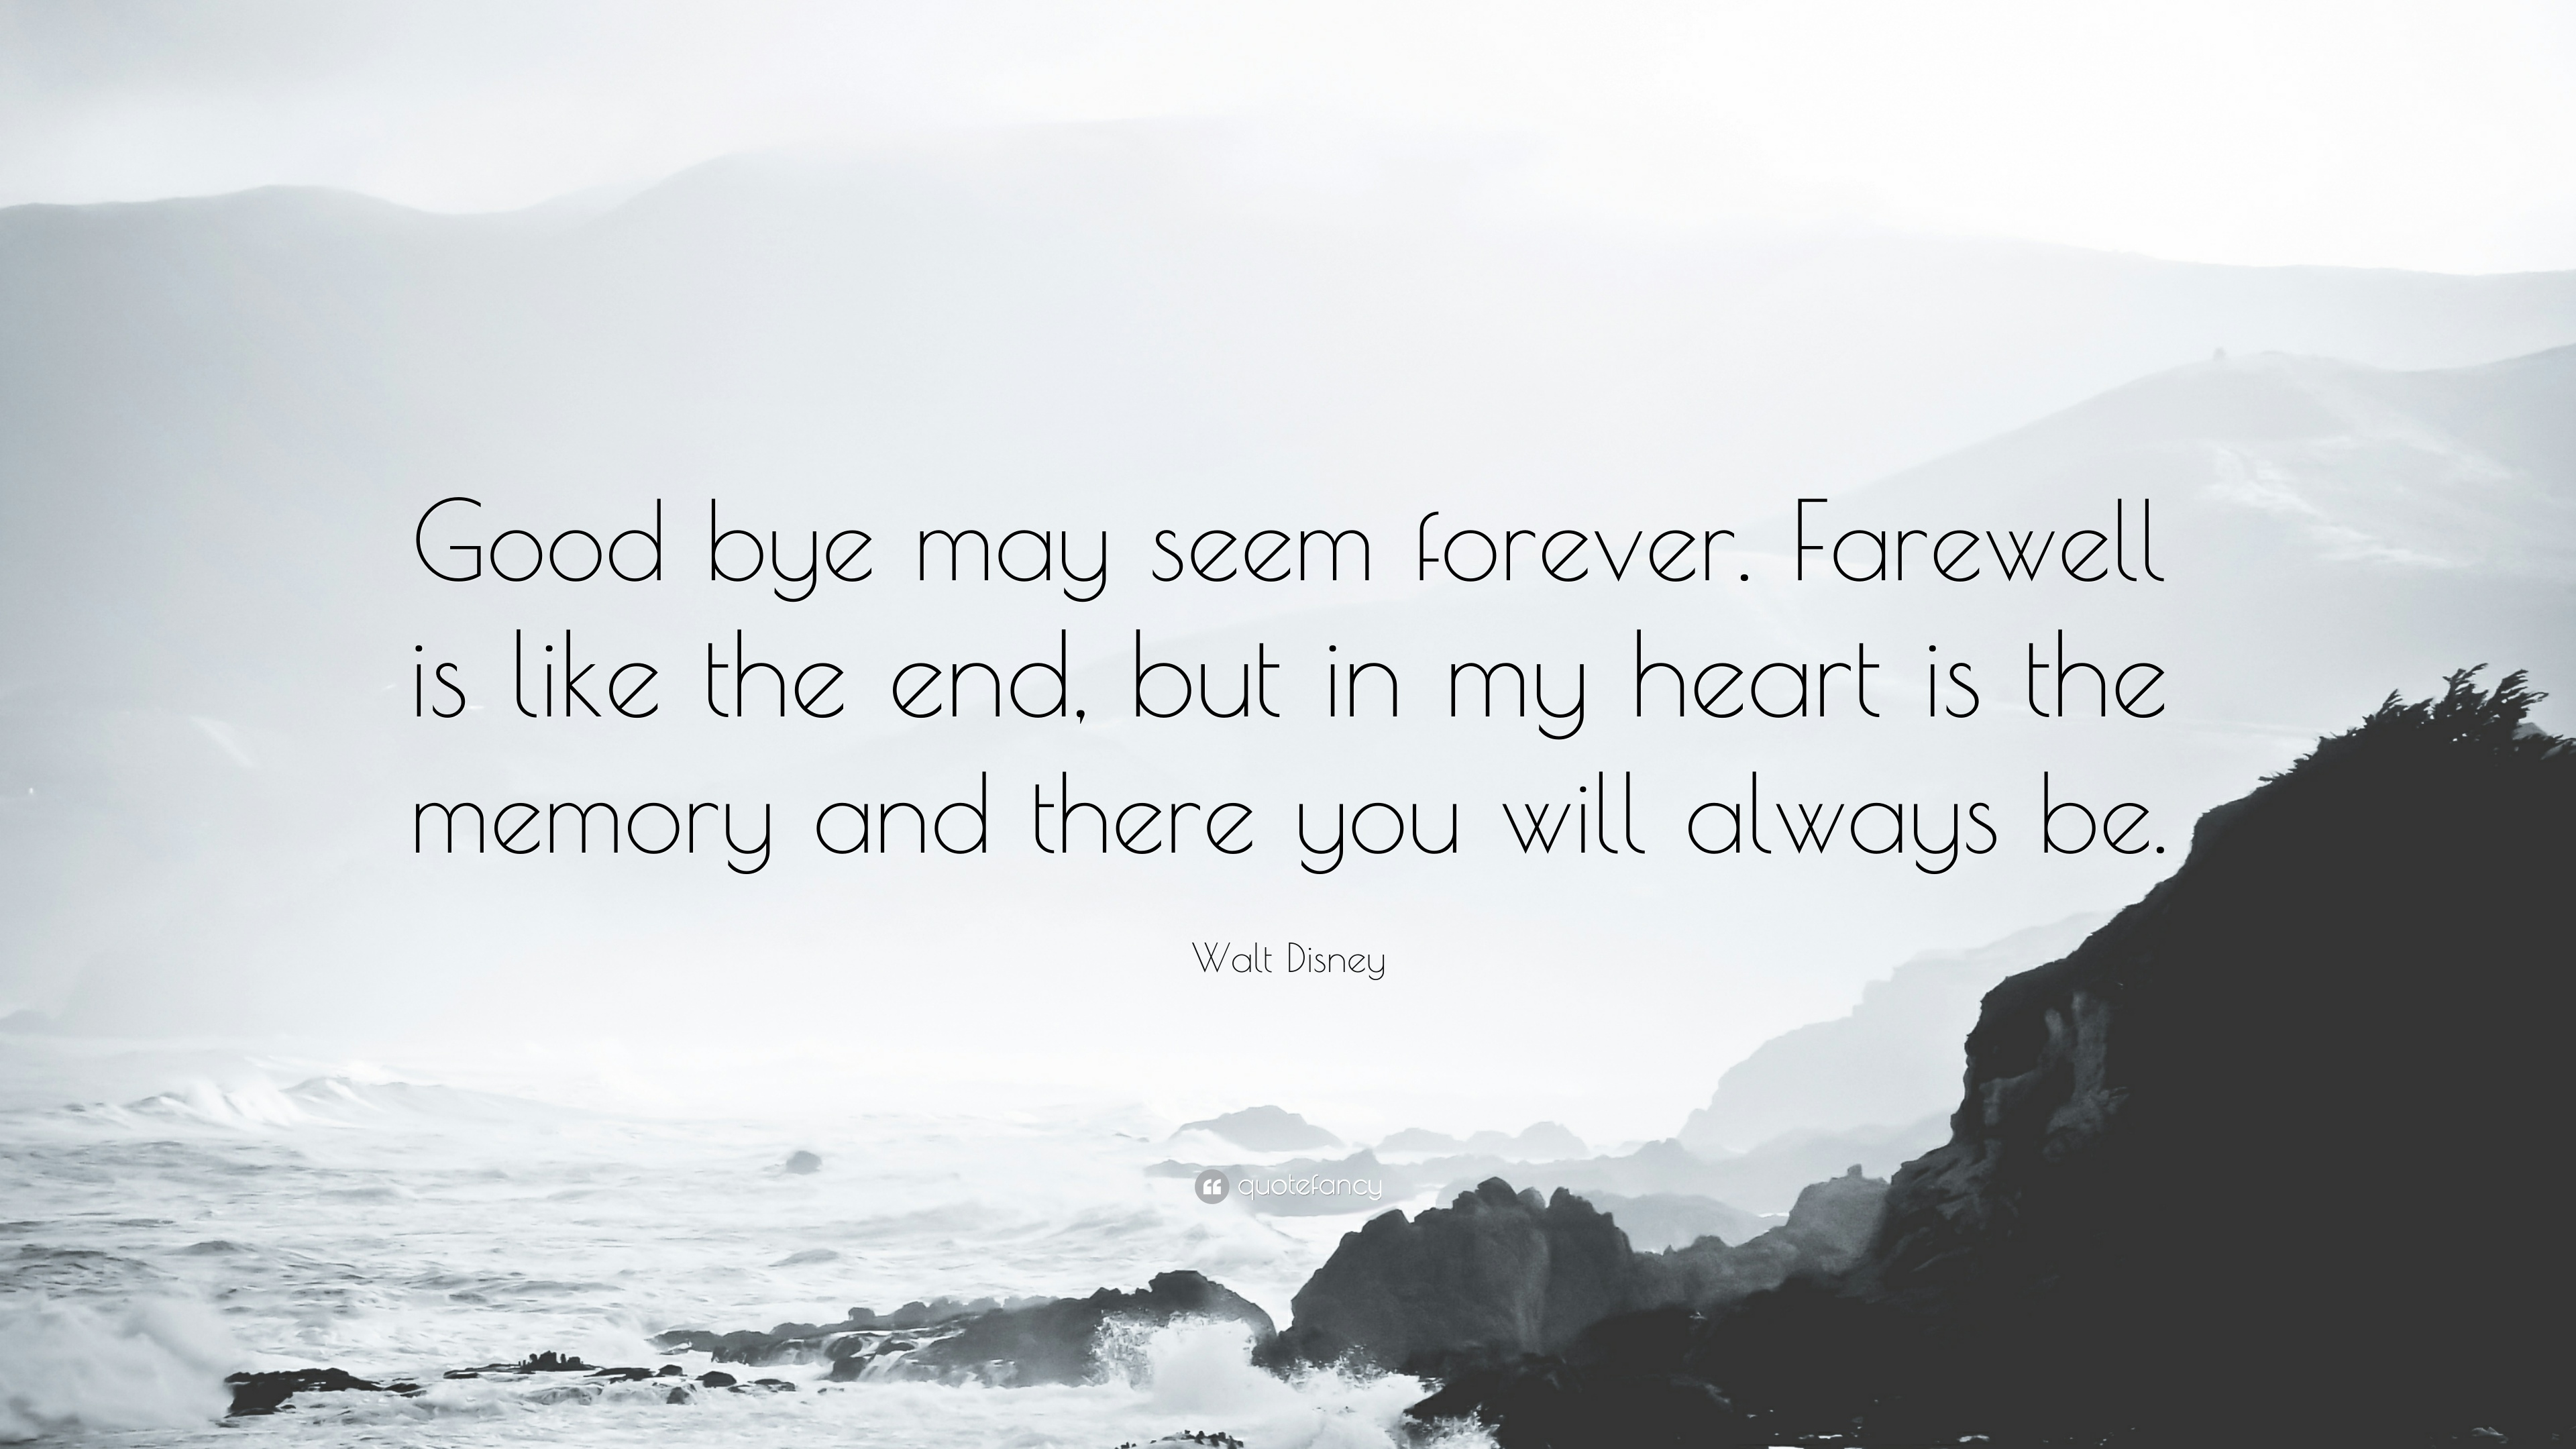 Goodbye farewell quotes - Goodbye Quotes Good Bye May Seem Forever Farewell Is Like The End